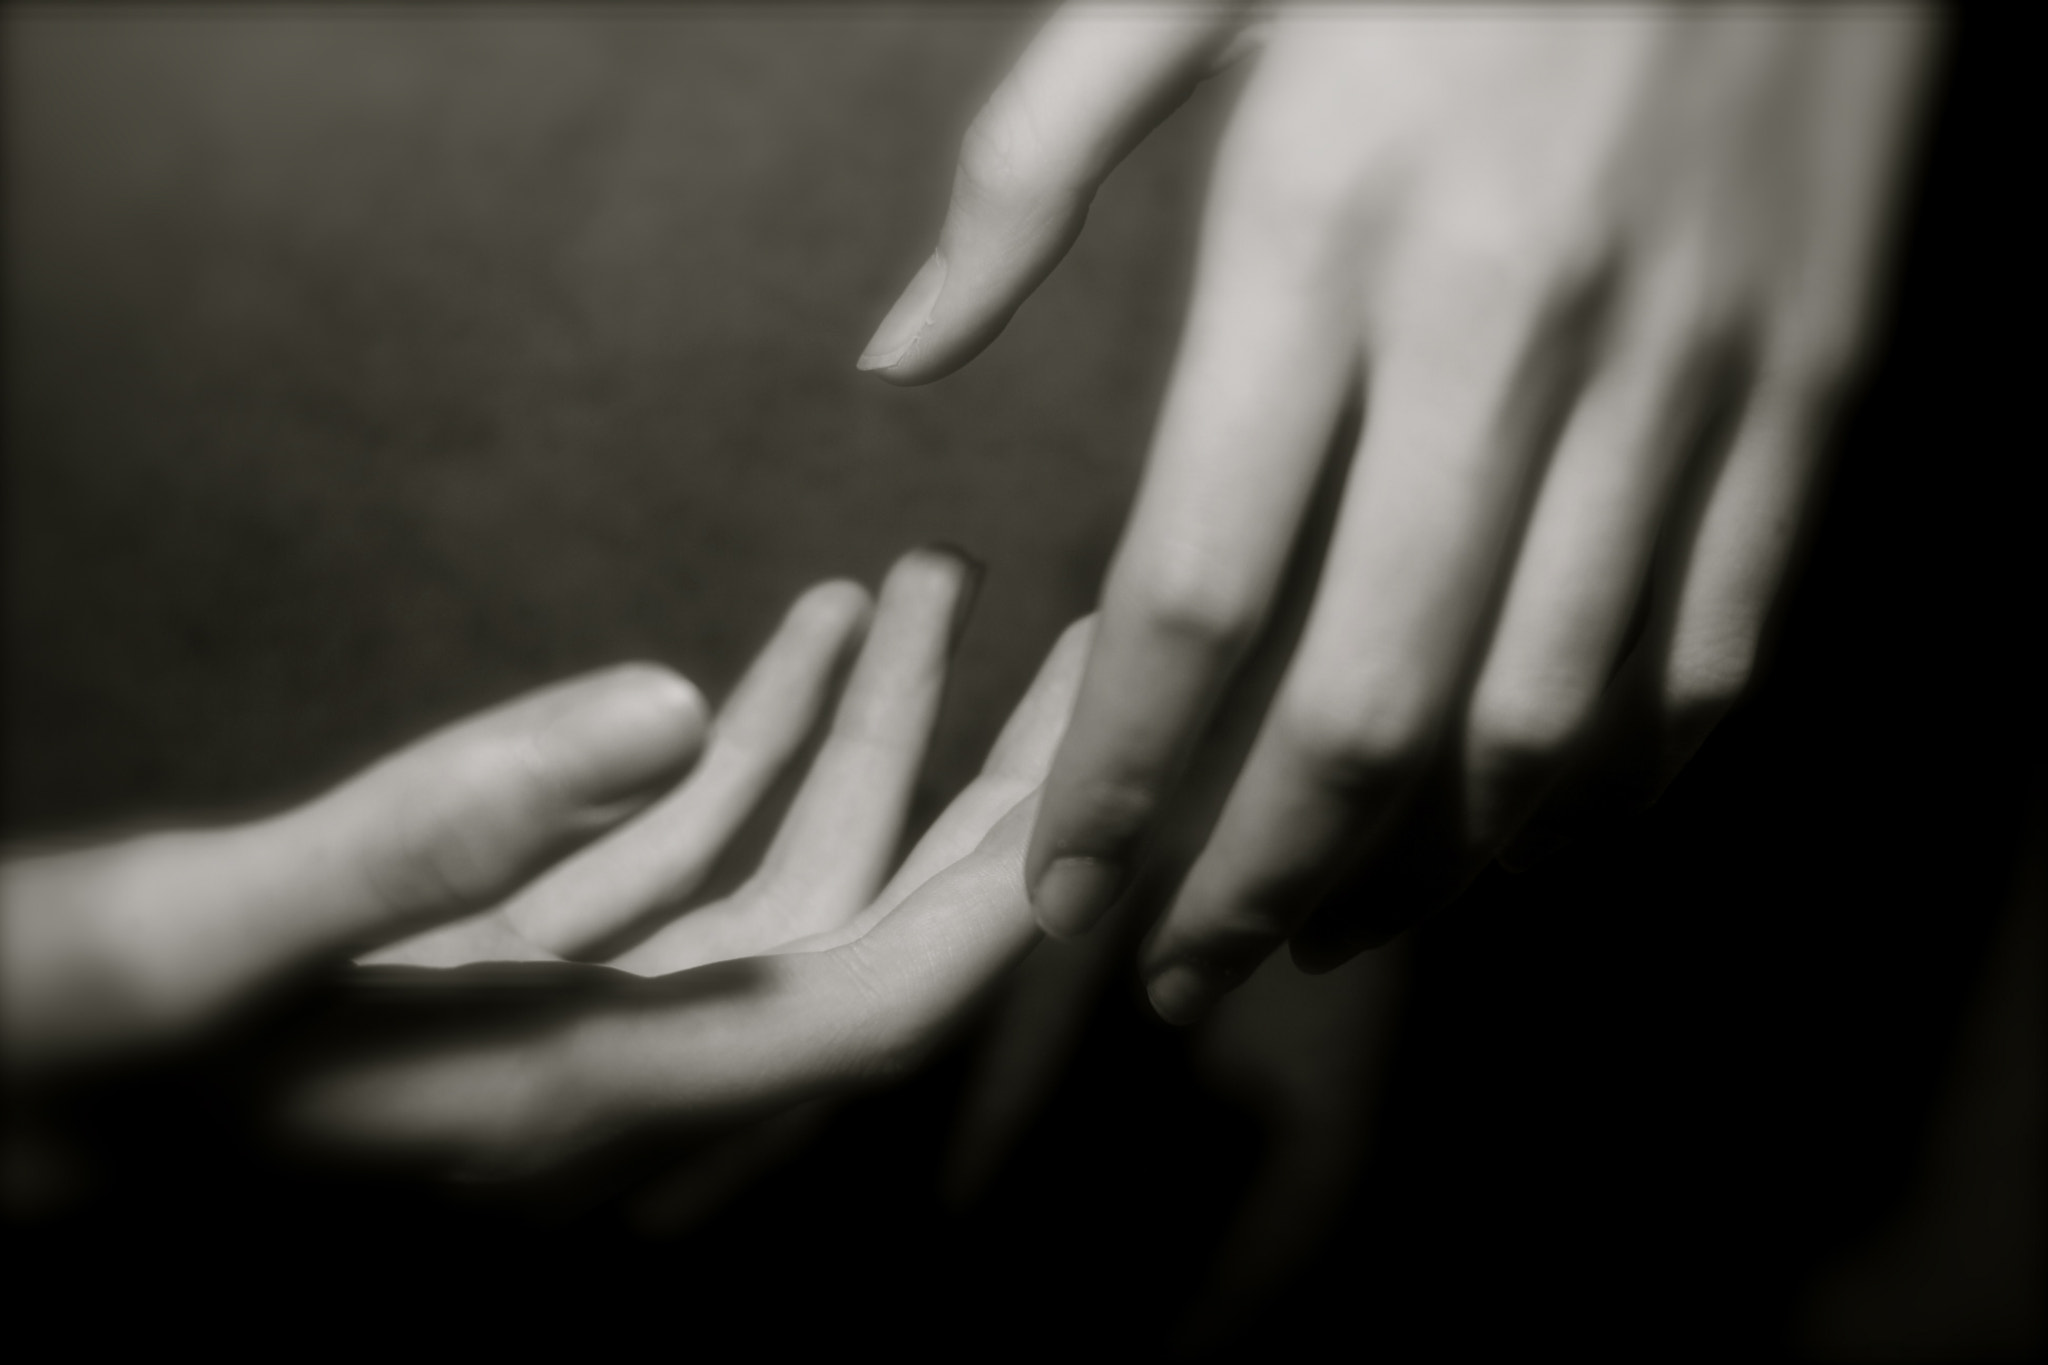 Photograph Hands by Cristian Medina on 500px